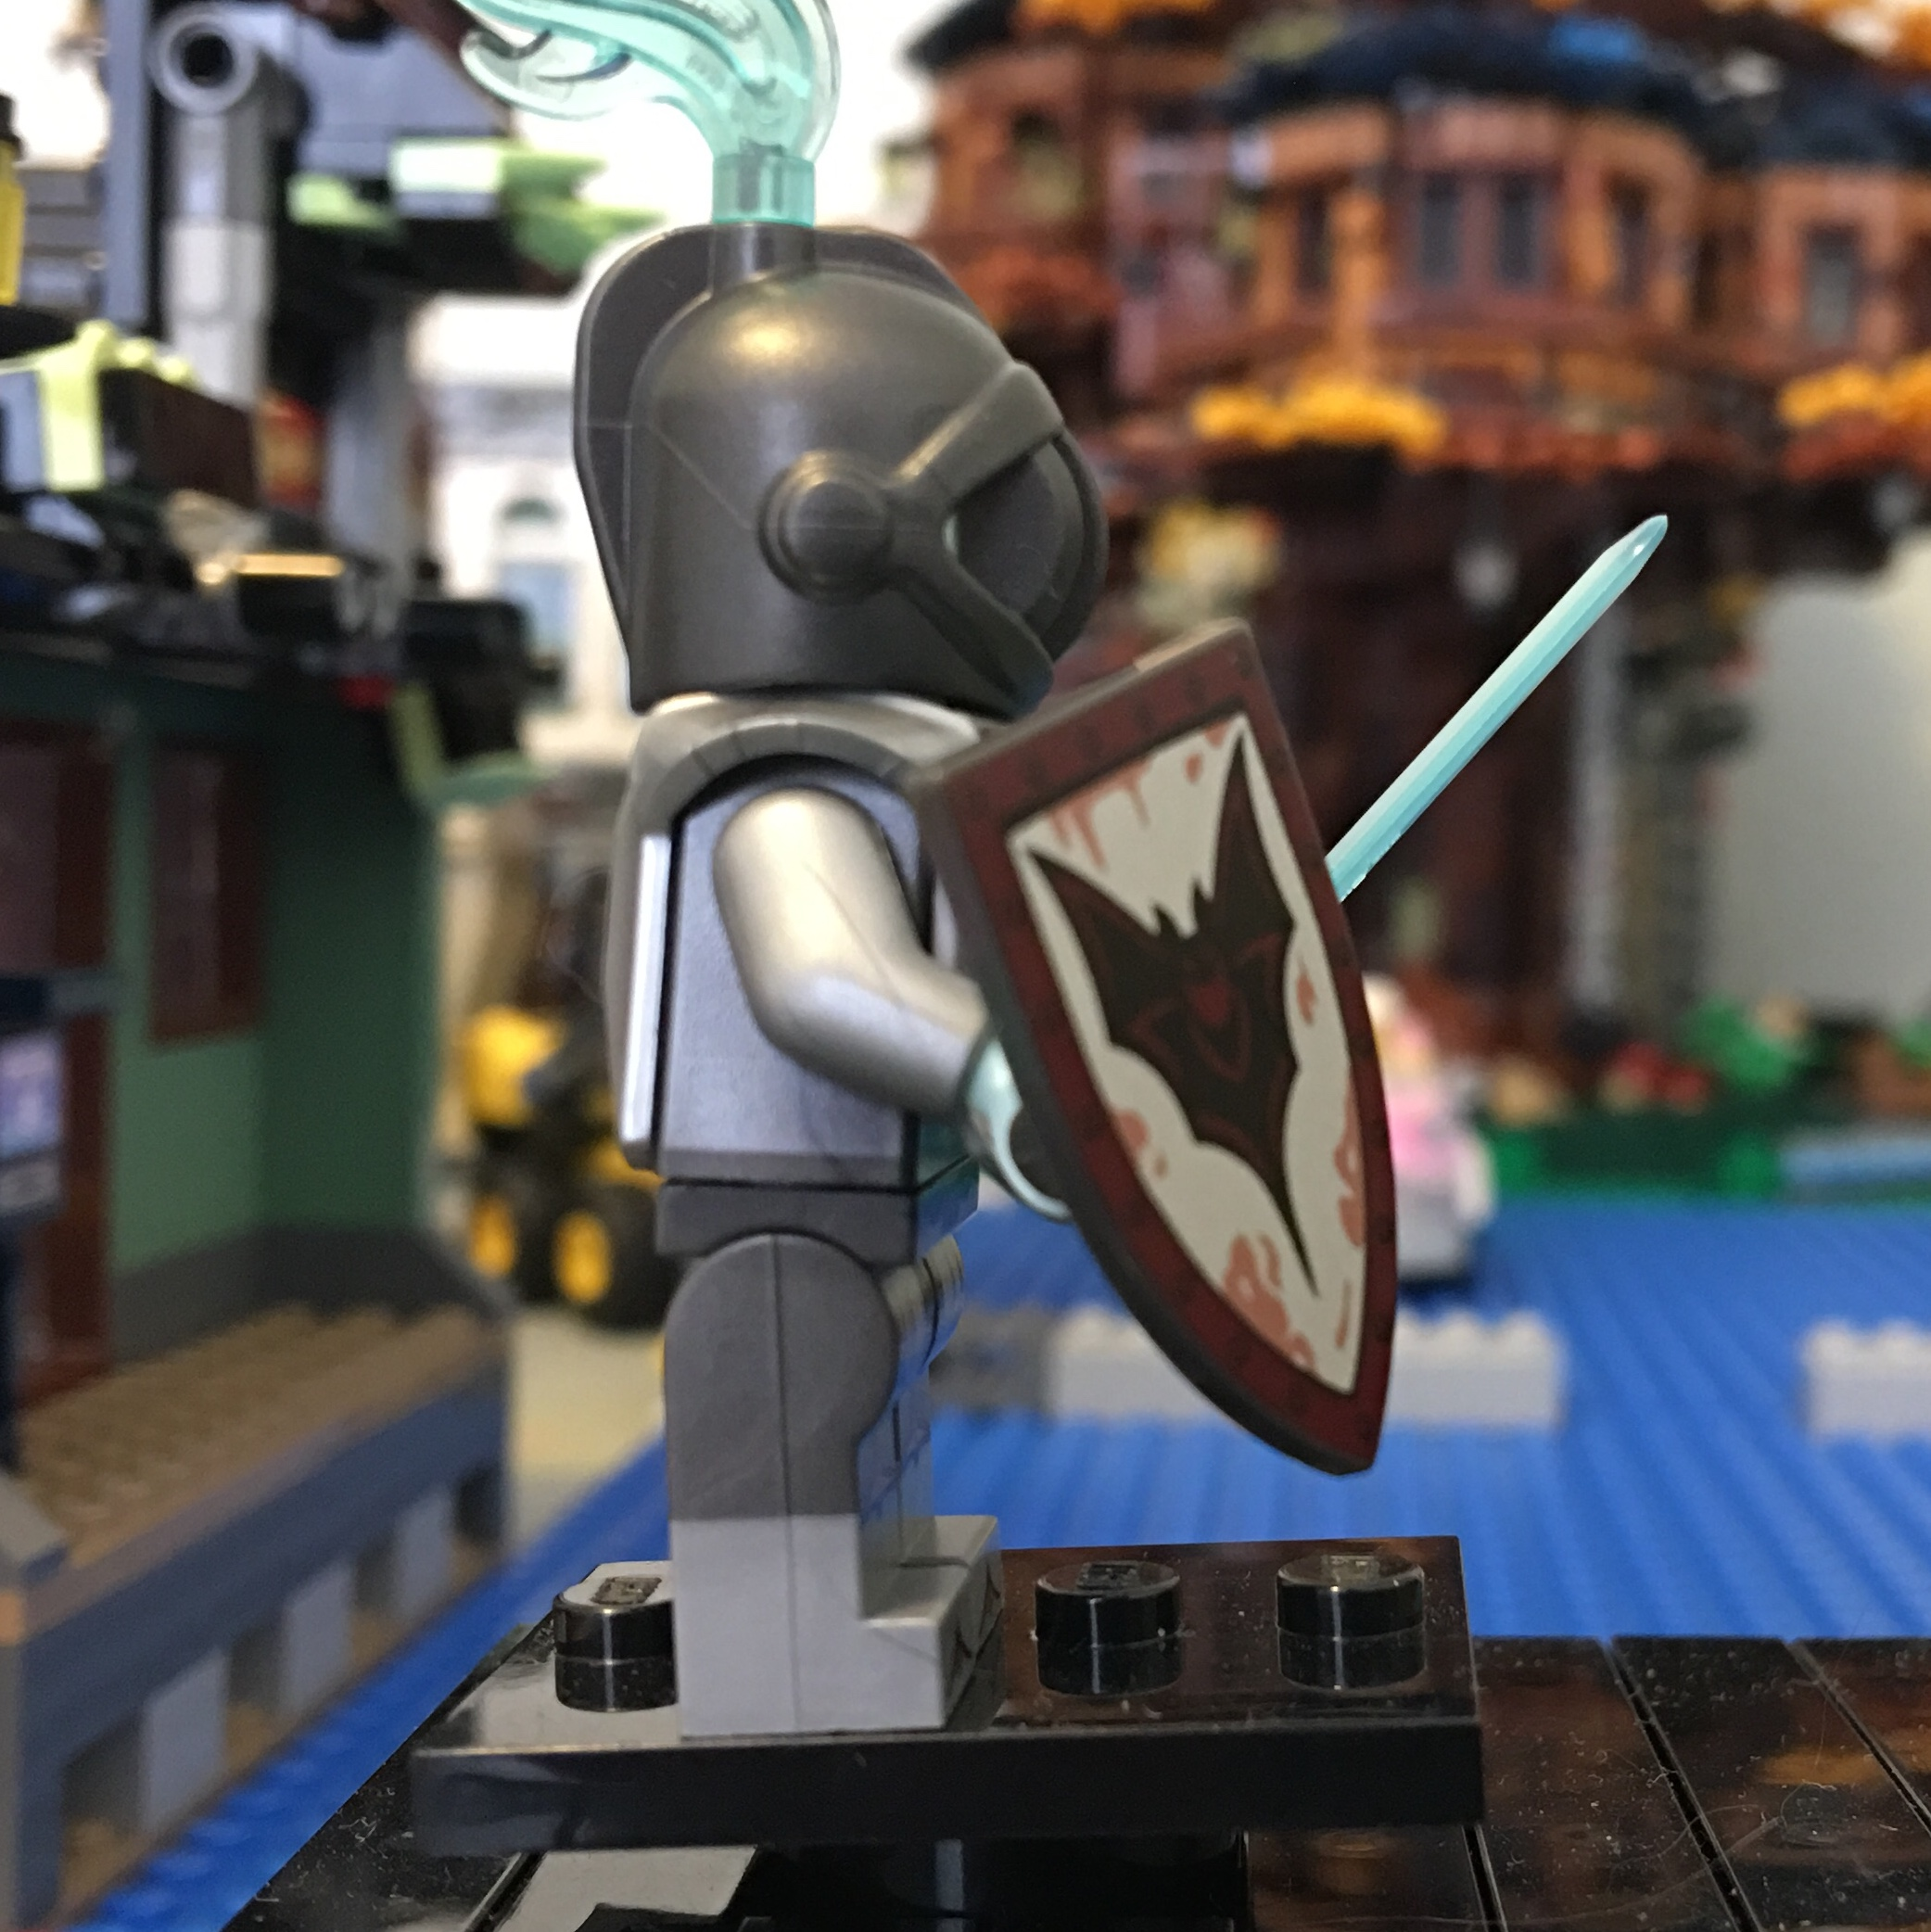 GHOST KNIGHT New Lego Minifigure From Series 19